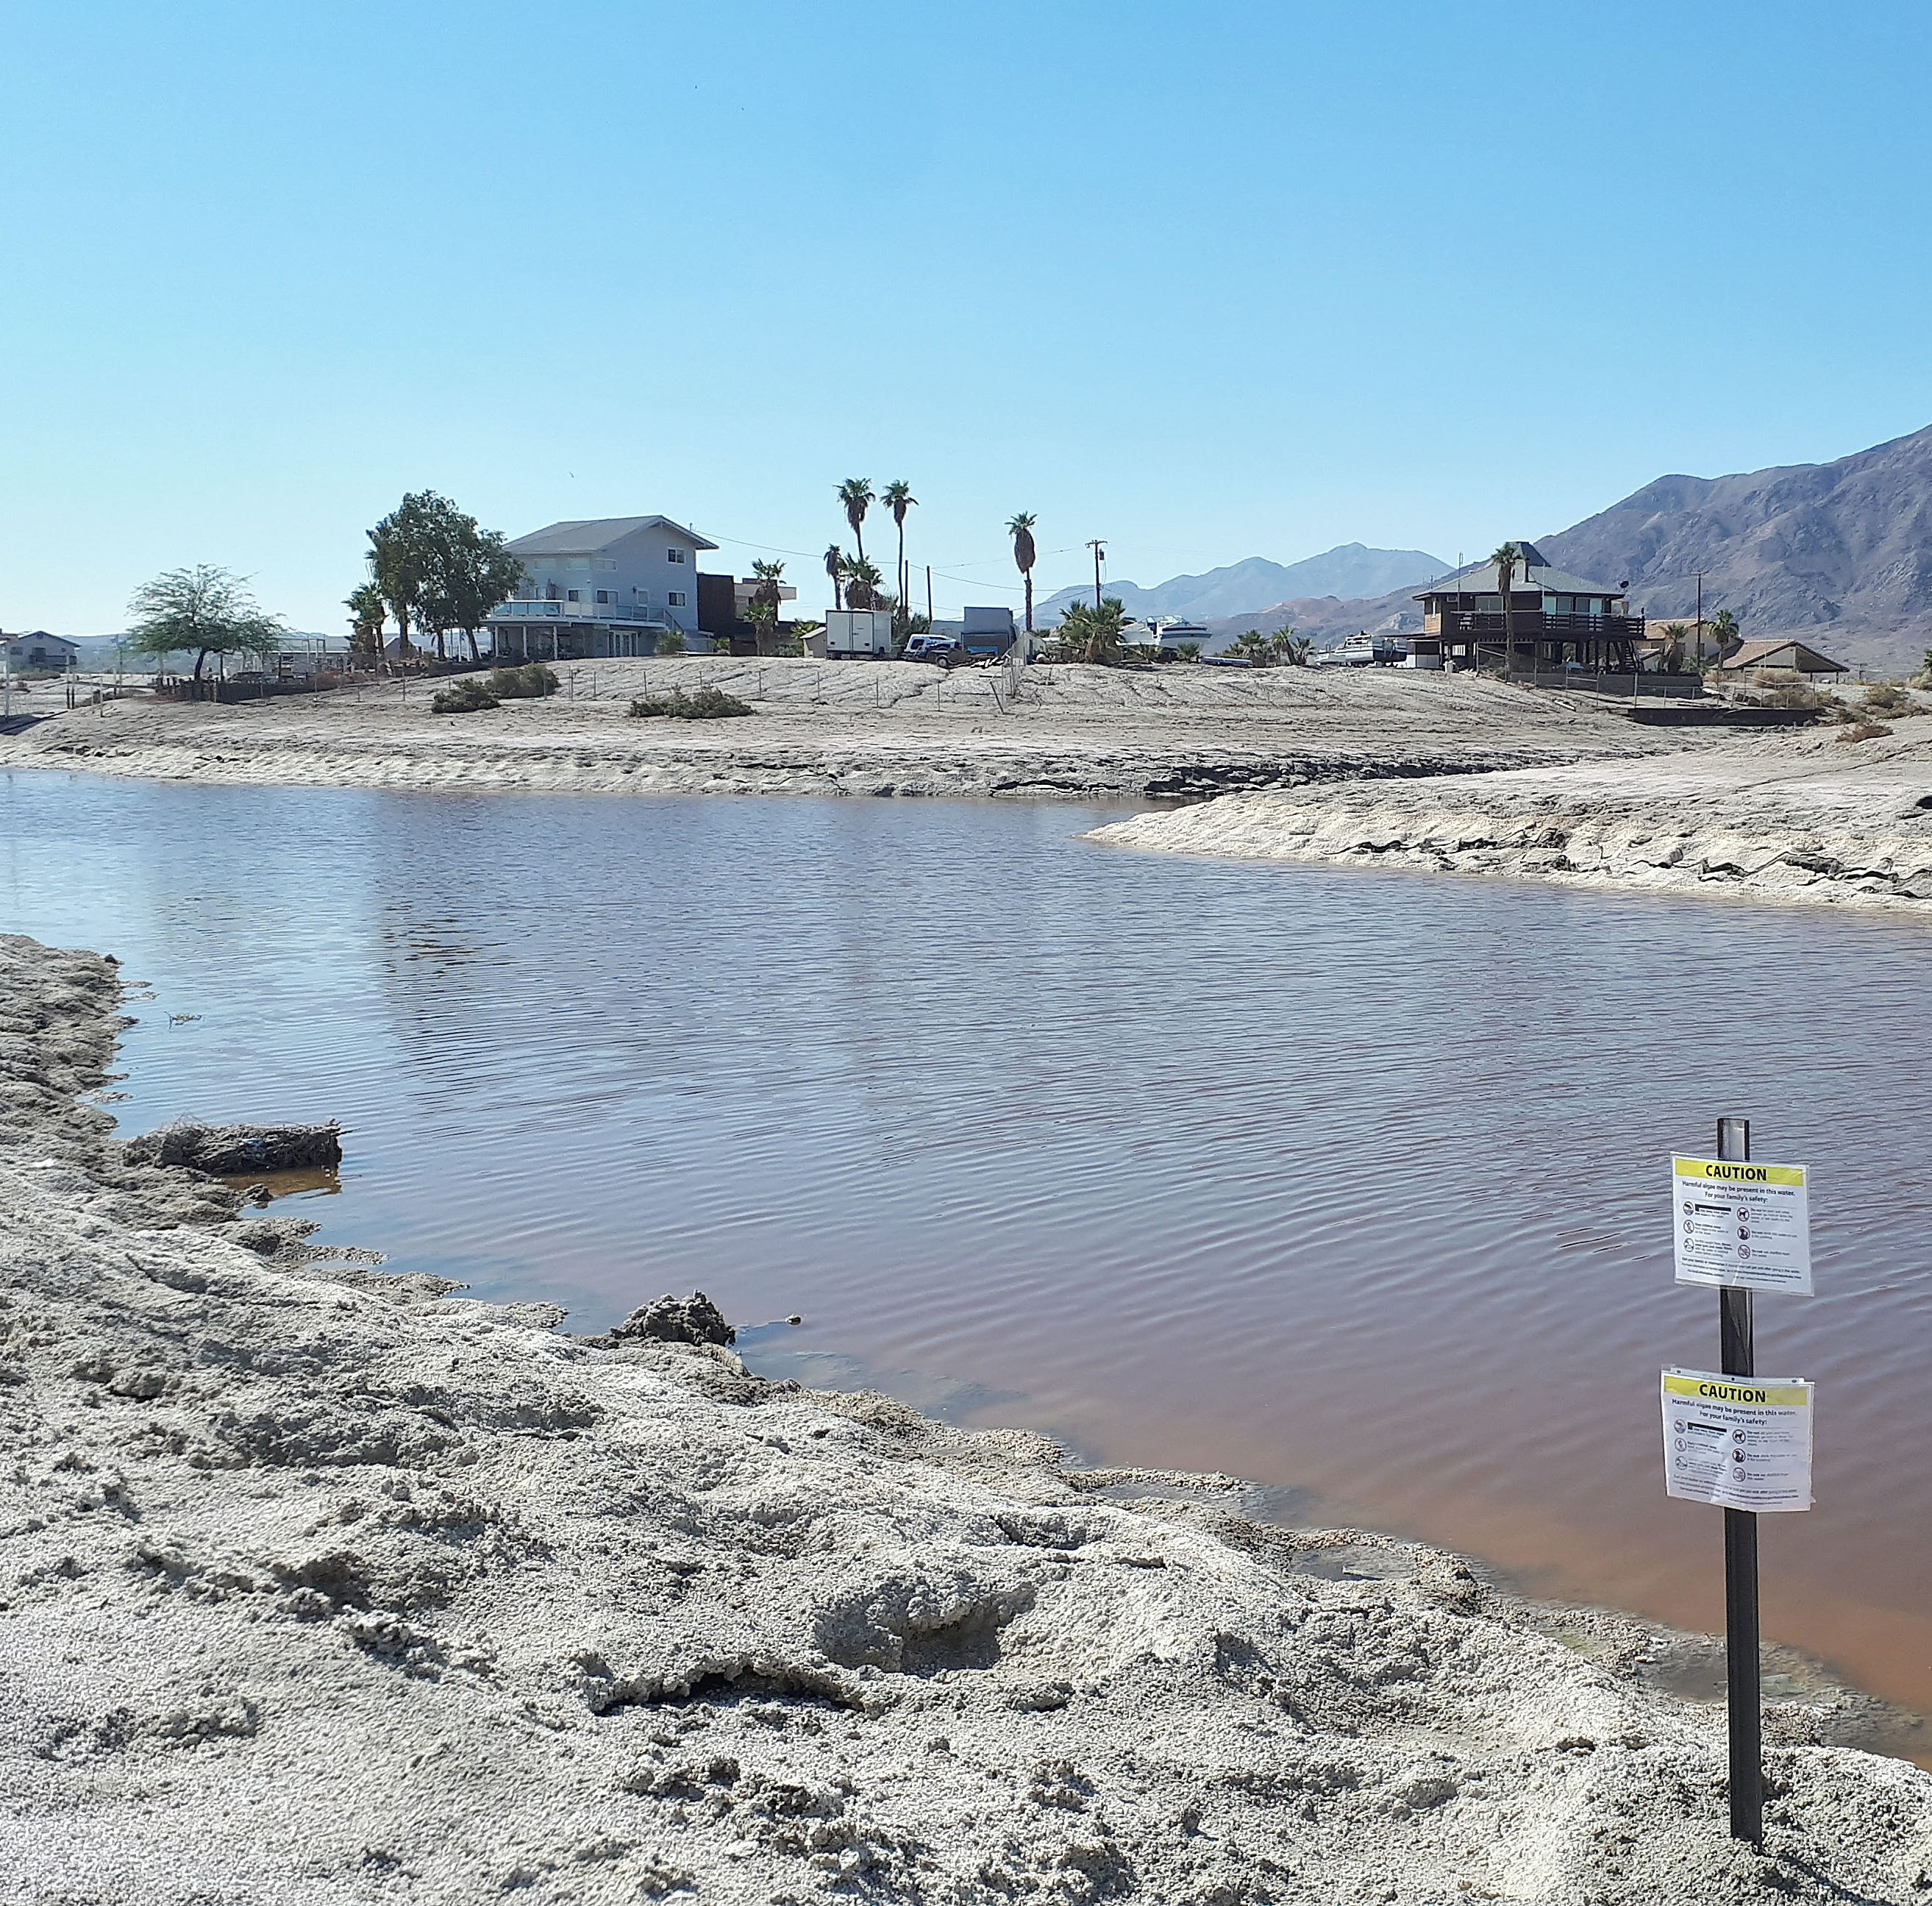 Salton Sea 10-year 'rescue' plan flawed, but letting lake revert to desert would be folly